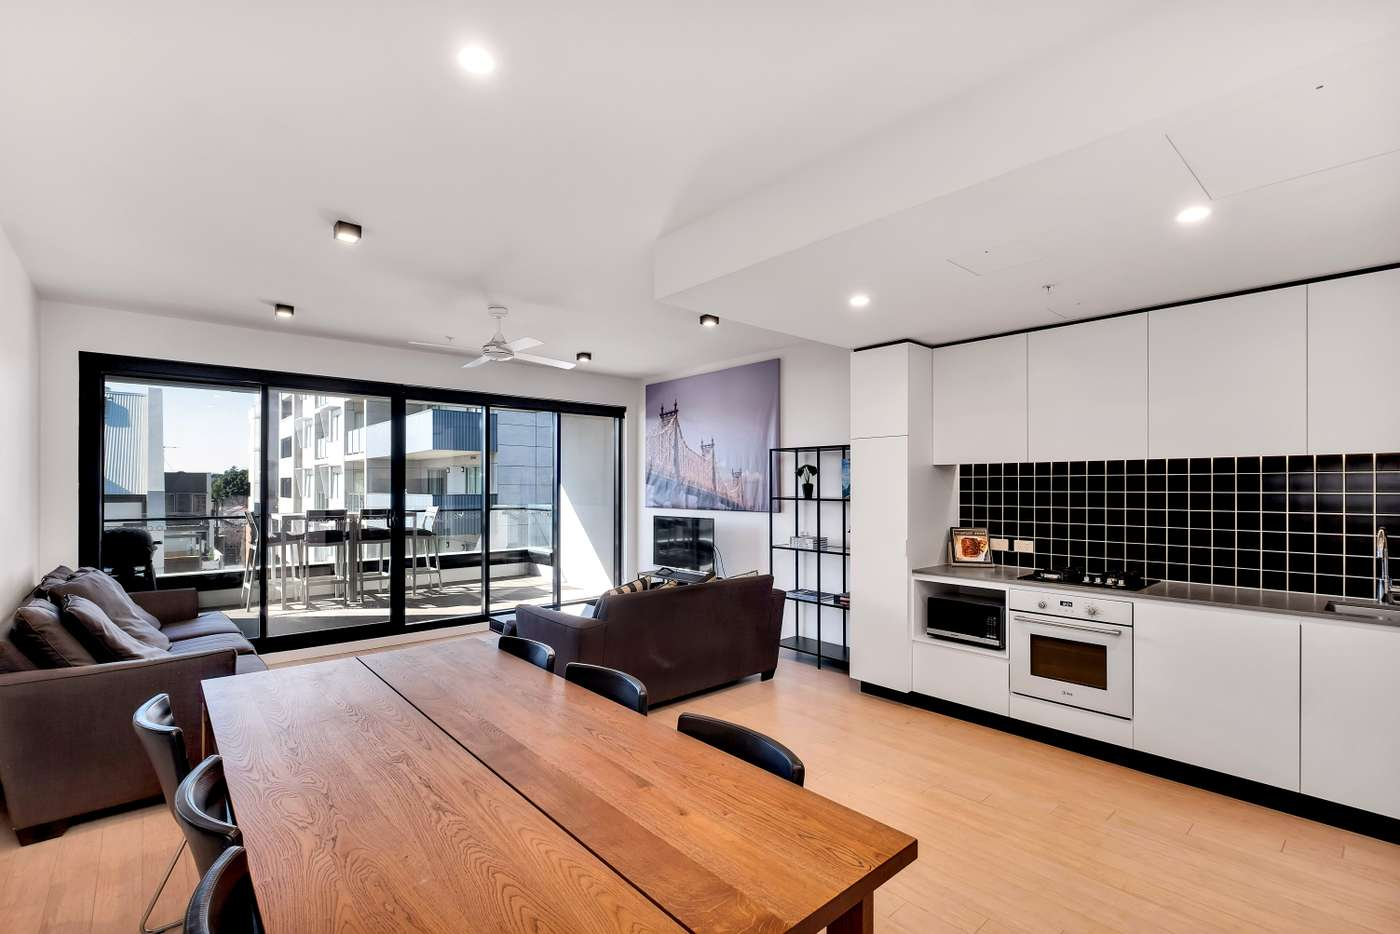 Fifth view of Homely apartment listing, 208/14 Sixth Street, Bowden SA 5007